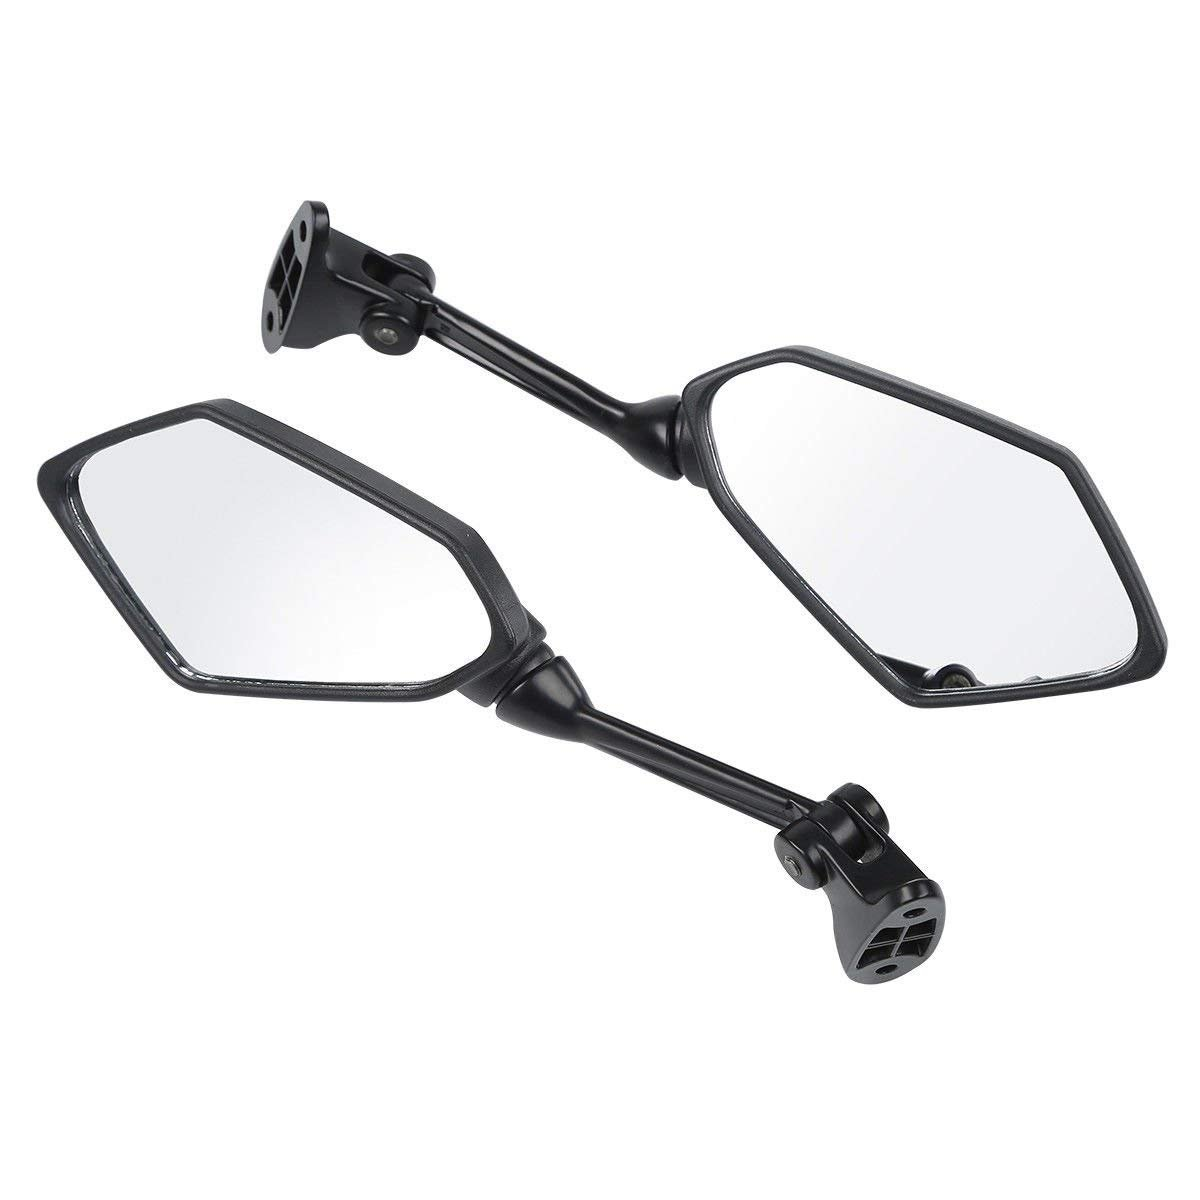 MZS Motorcycle Mirrors Rear View compatible Kawasaki Ninja ZX6R ZX-6R ZX600P ZX600R 2009 2010 2011 2012 Ninja ZX6R ZX-6R ZX600P ZX600R Mirrors Black